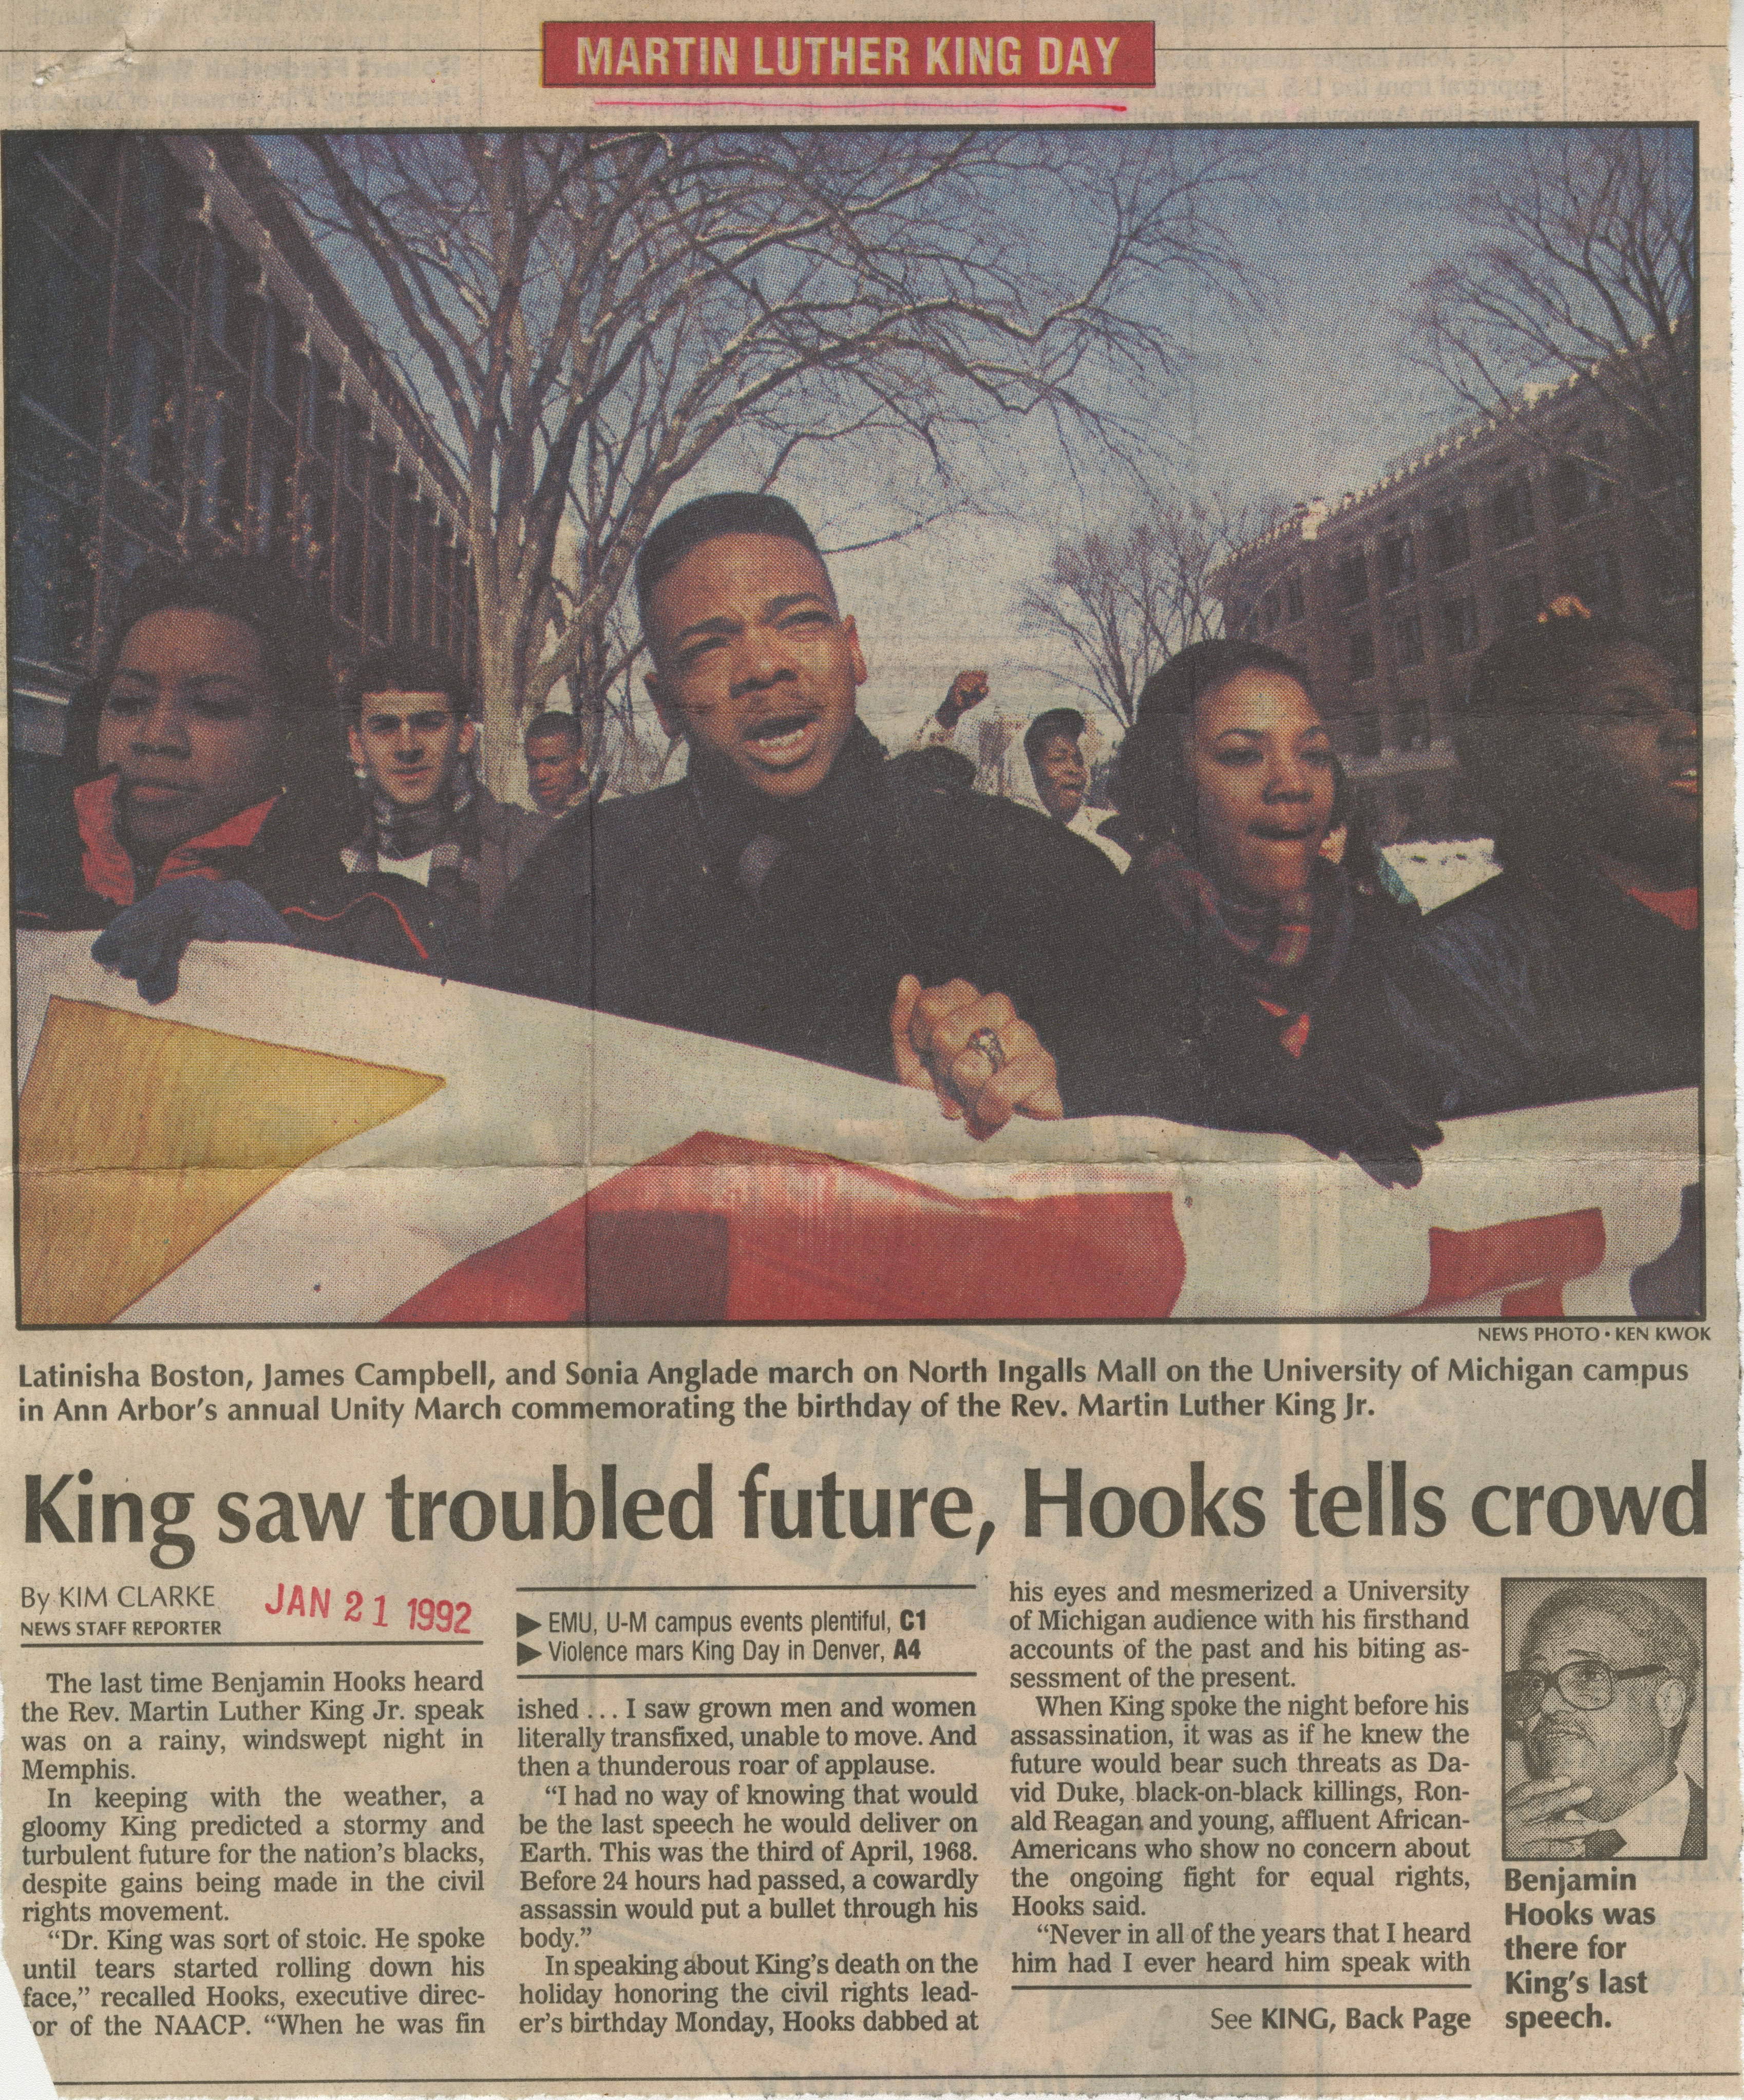 King saw troubled future, Hooks tells crowd image